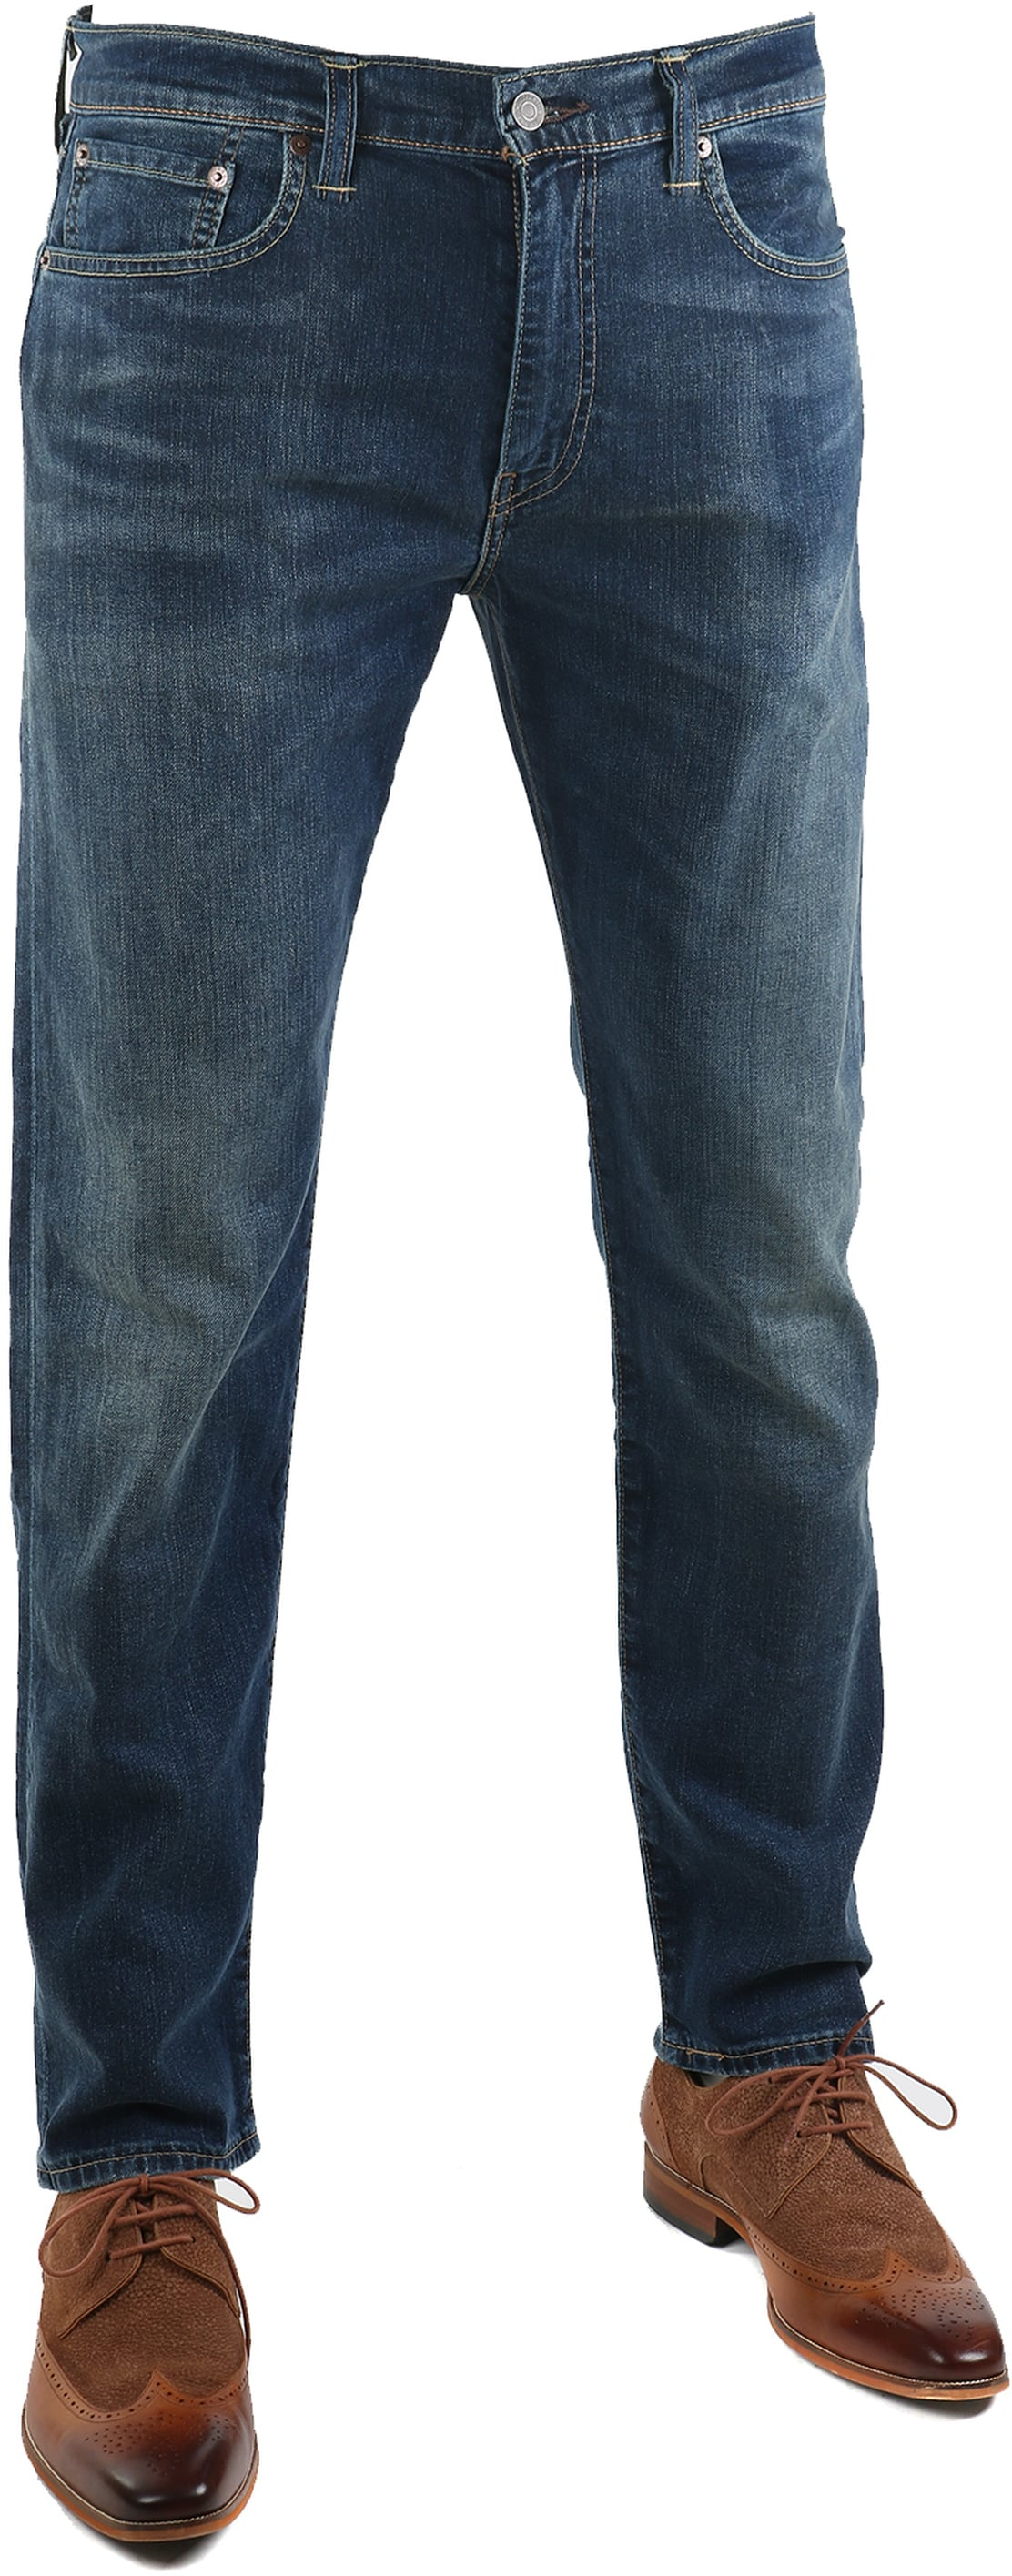 Levi's 502 Jeans Torch Washed Blue 0017 foto 0